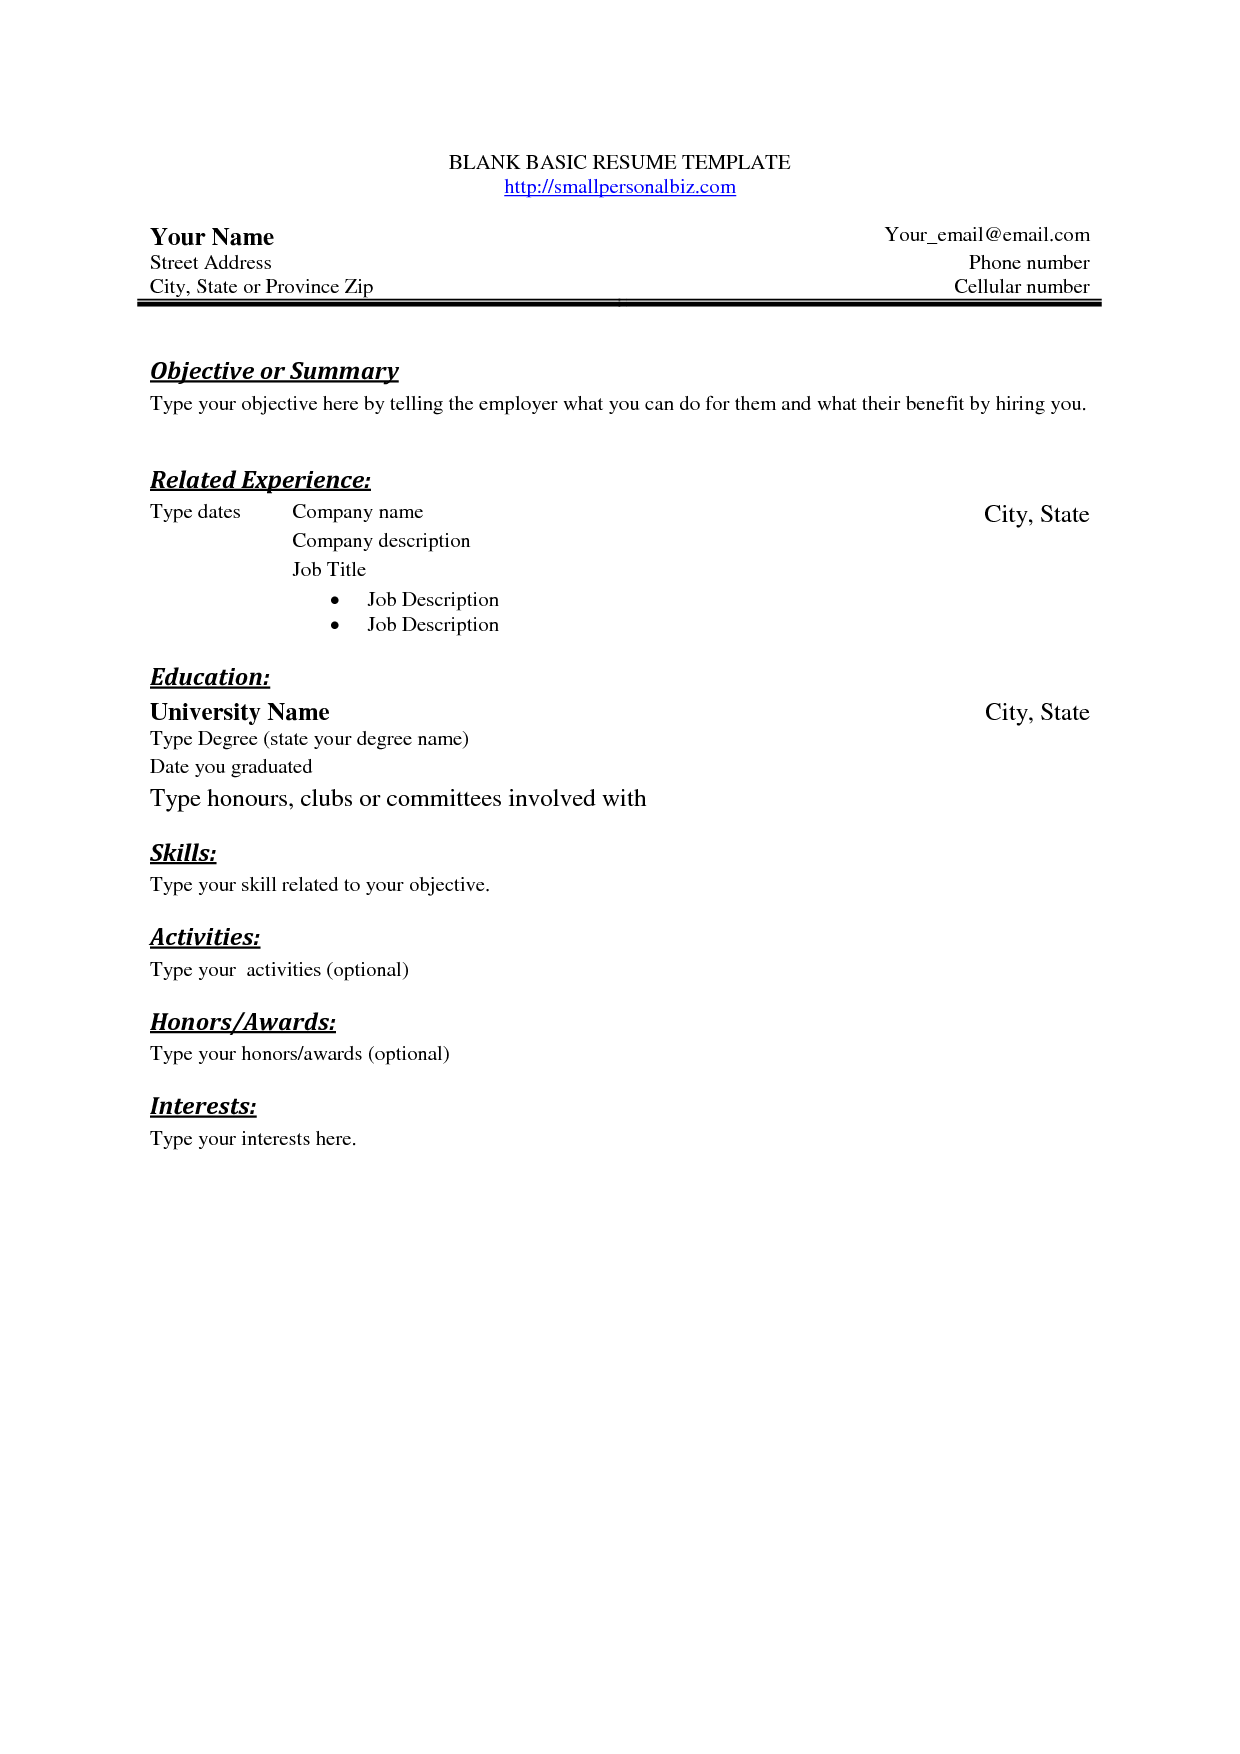 Easy Resume Examples Stylist And Luxury Simple Resume Layout 10 Free Basic Blank Resume